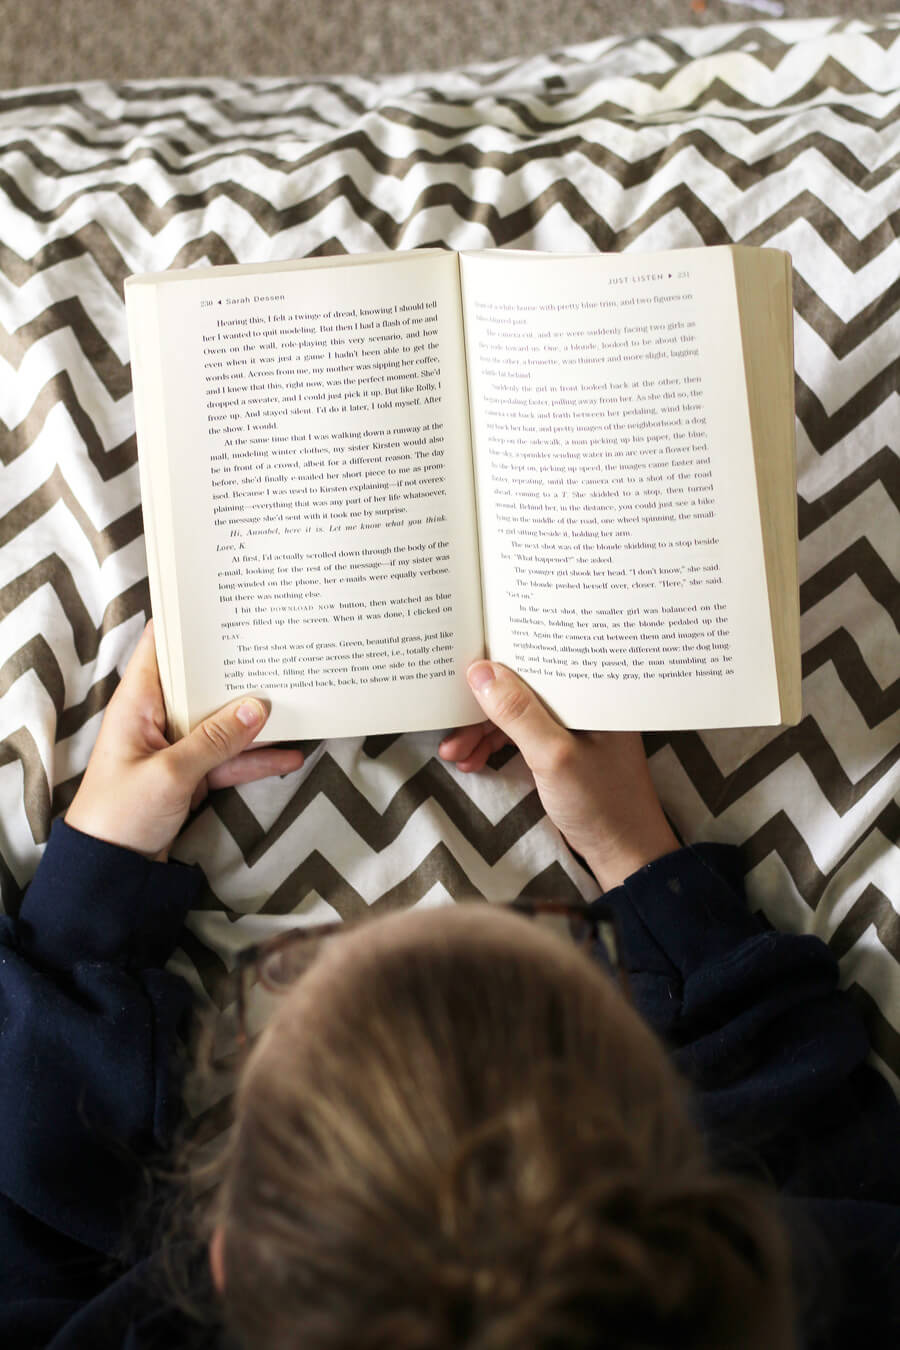 an overhead picture of a young girl reading a book